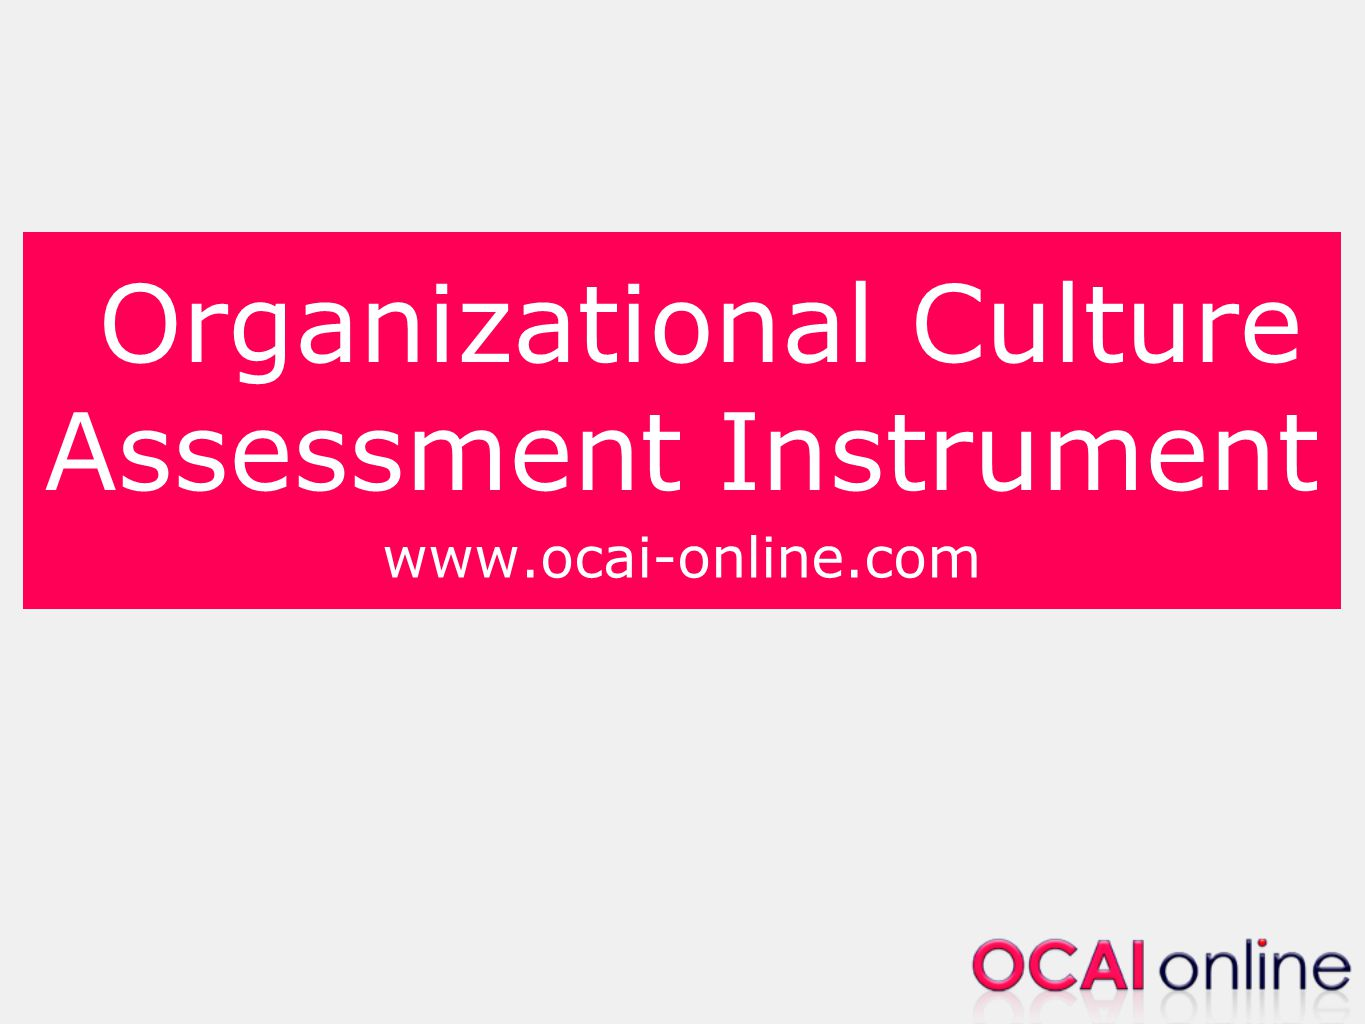 22 Complete the assessment: Assess each of the 6 key dimensions for the current situation Then, assess each of the 6 key dimensions for the preferred situation (let's say in 5 years) Your personal Culture Profile is emailed to your address immediately after completion OCAI One is free for individual participants